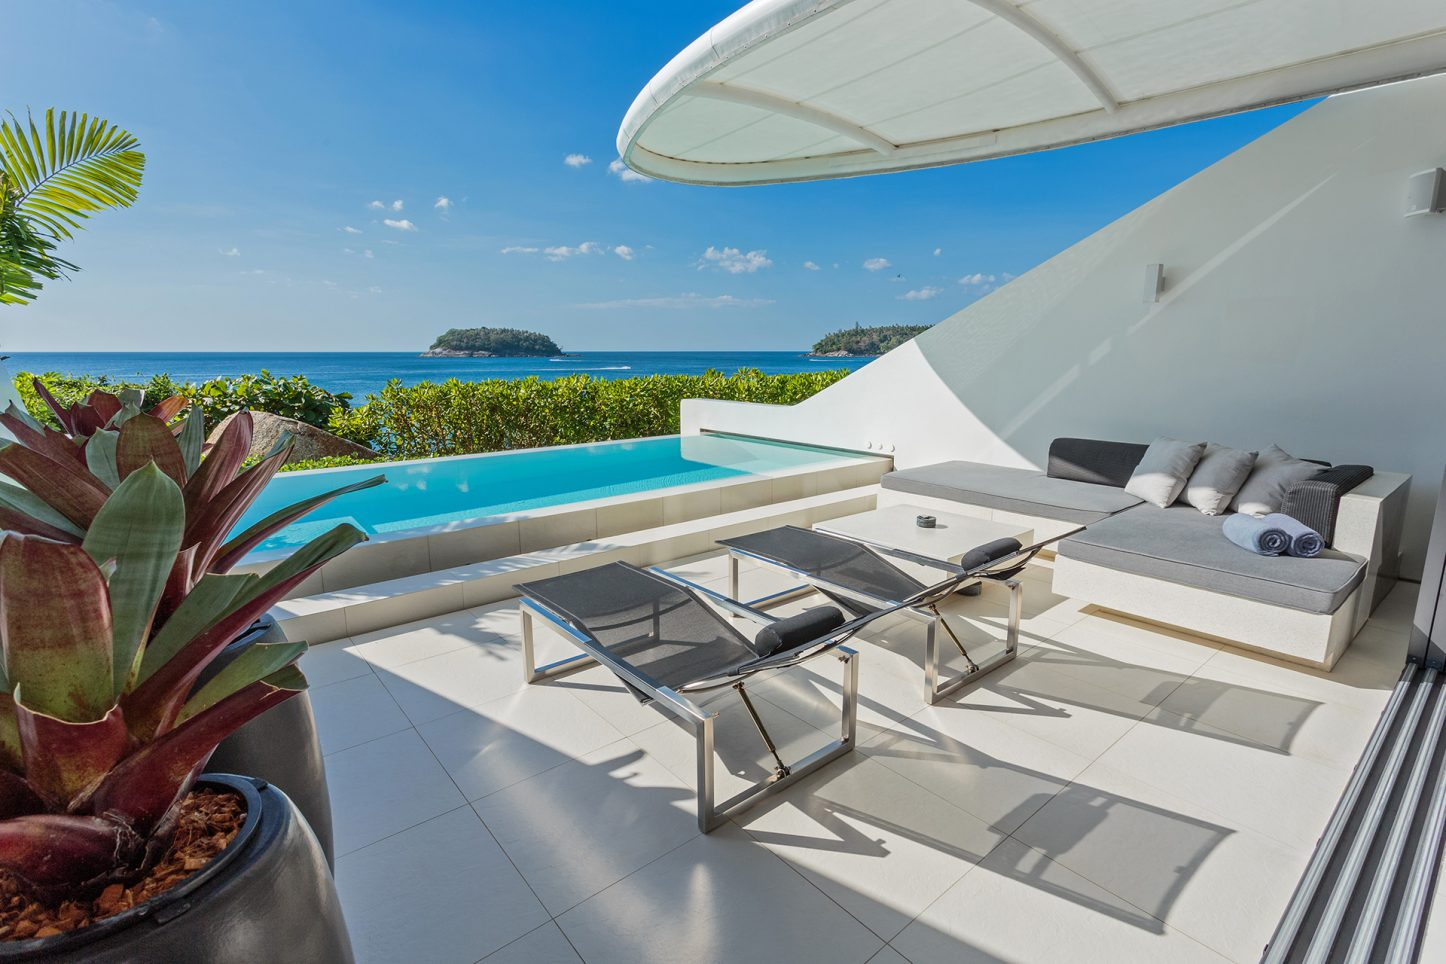 One-bedroom 'Ocean Pool Loft' Sky Villas - a romantic Phuket luxury resort with the privacy of a pool villa